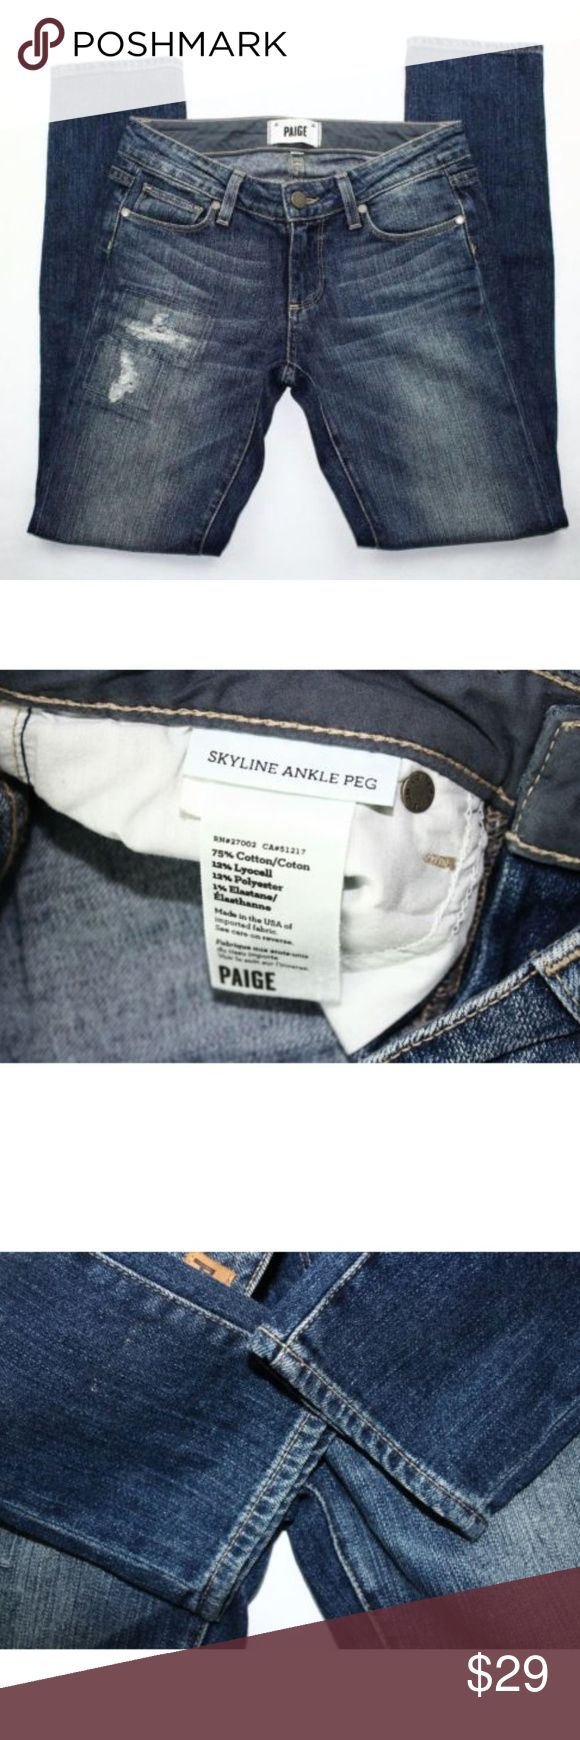 [Paige] Skyline Ankle Peg Jeans SZ 24 Distressed Paige Womens Skyline Ankle Peg Jeans SZ 24 Distressed Skinny Medium Wash  No major flaws/damages or stains.   See photos for details. Pet & Smoke Free Home  Measurements: Flat Lay Length: 36 Waist: 13.5  Inseam: 28.5 Rise: 7  I do accept offers so don't be shy!!! PAIGE Jeans Skinny